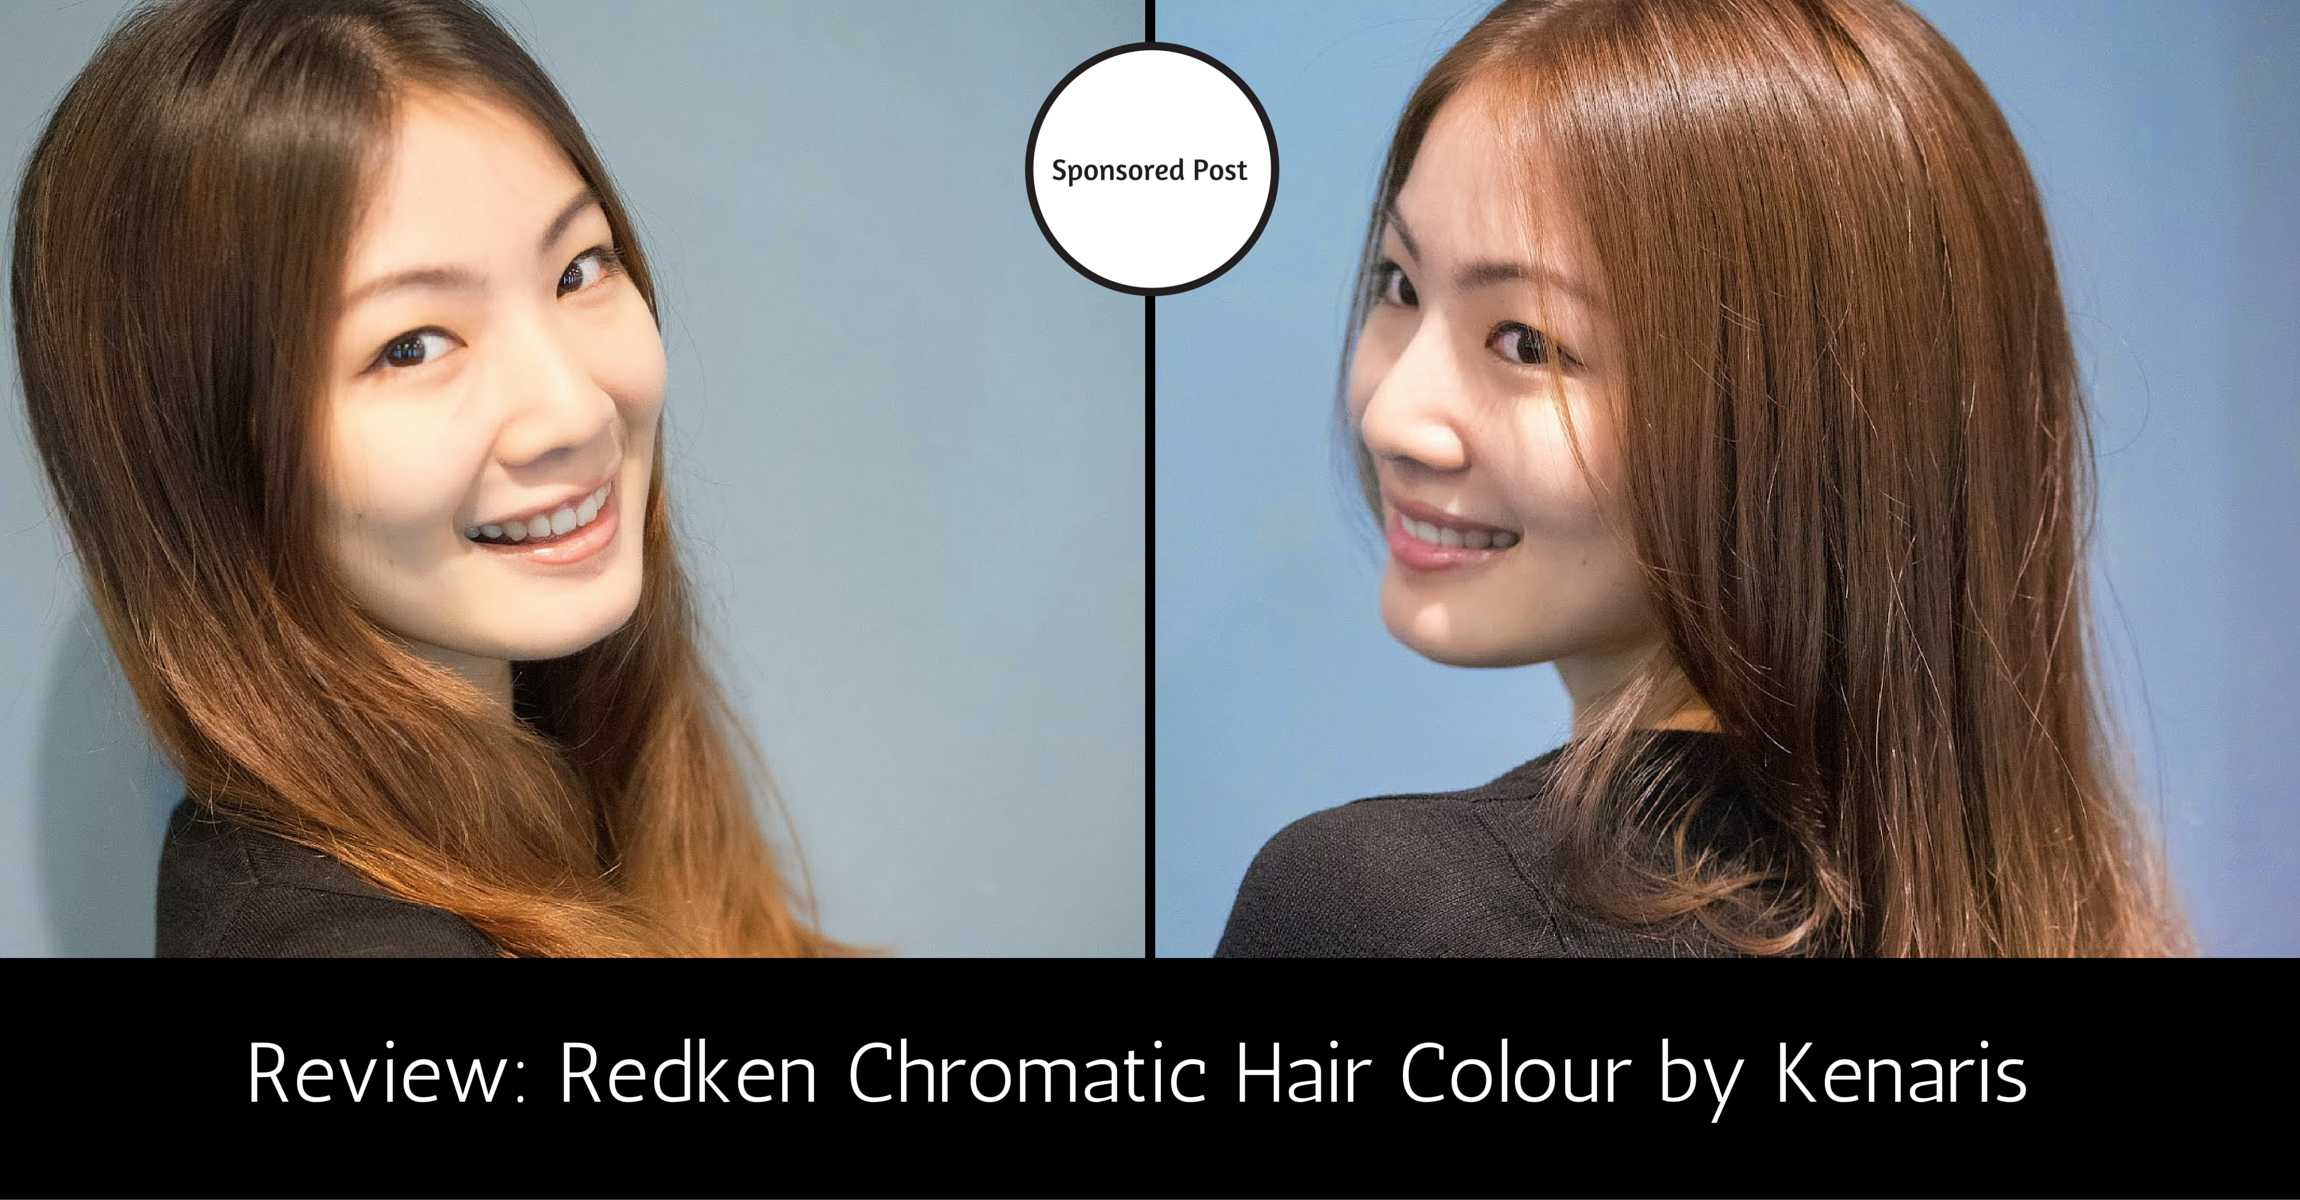 Redken Chromatic Hair Colour by Kenaris: Stylish Hair Colour for the Professional Woman